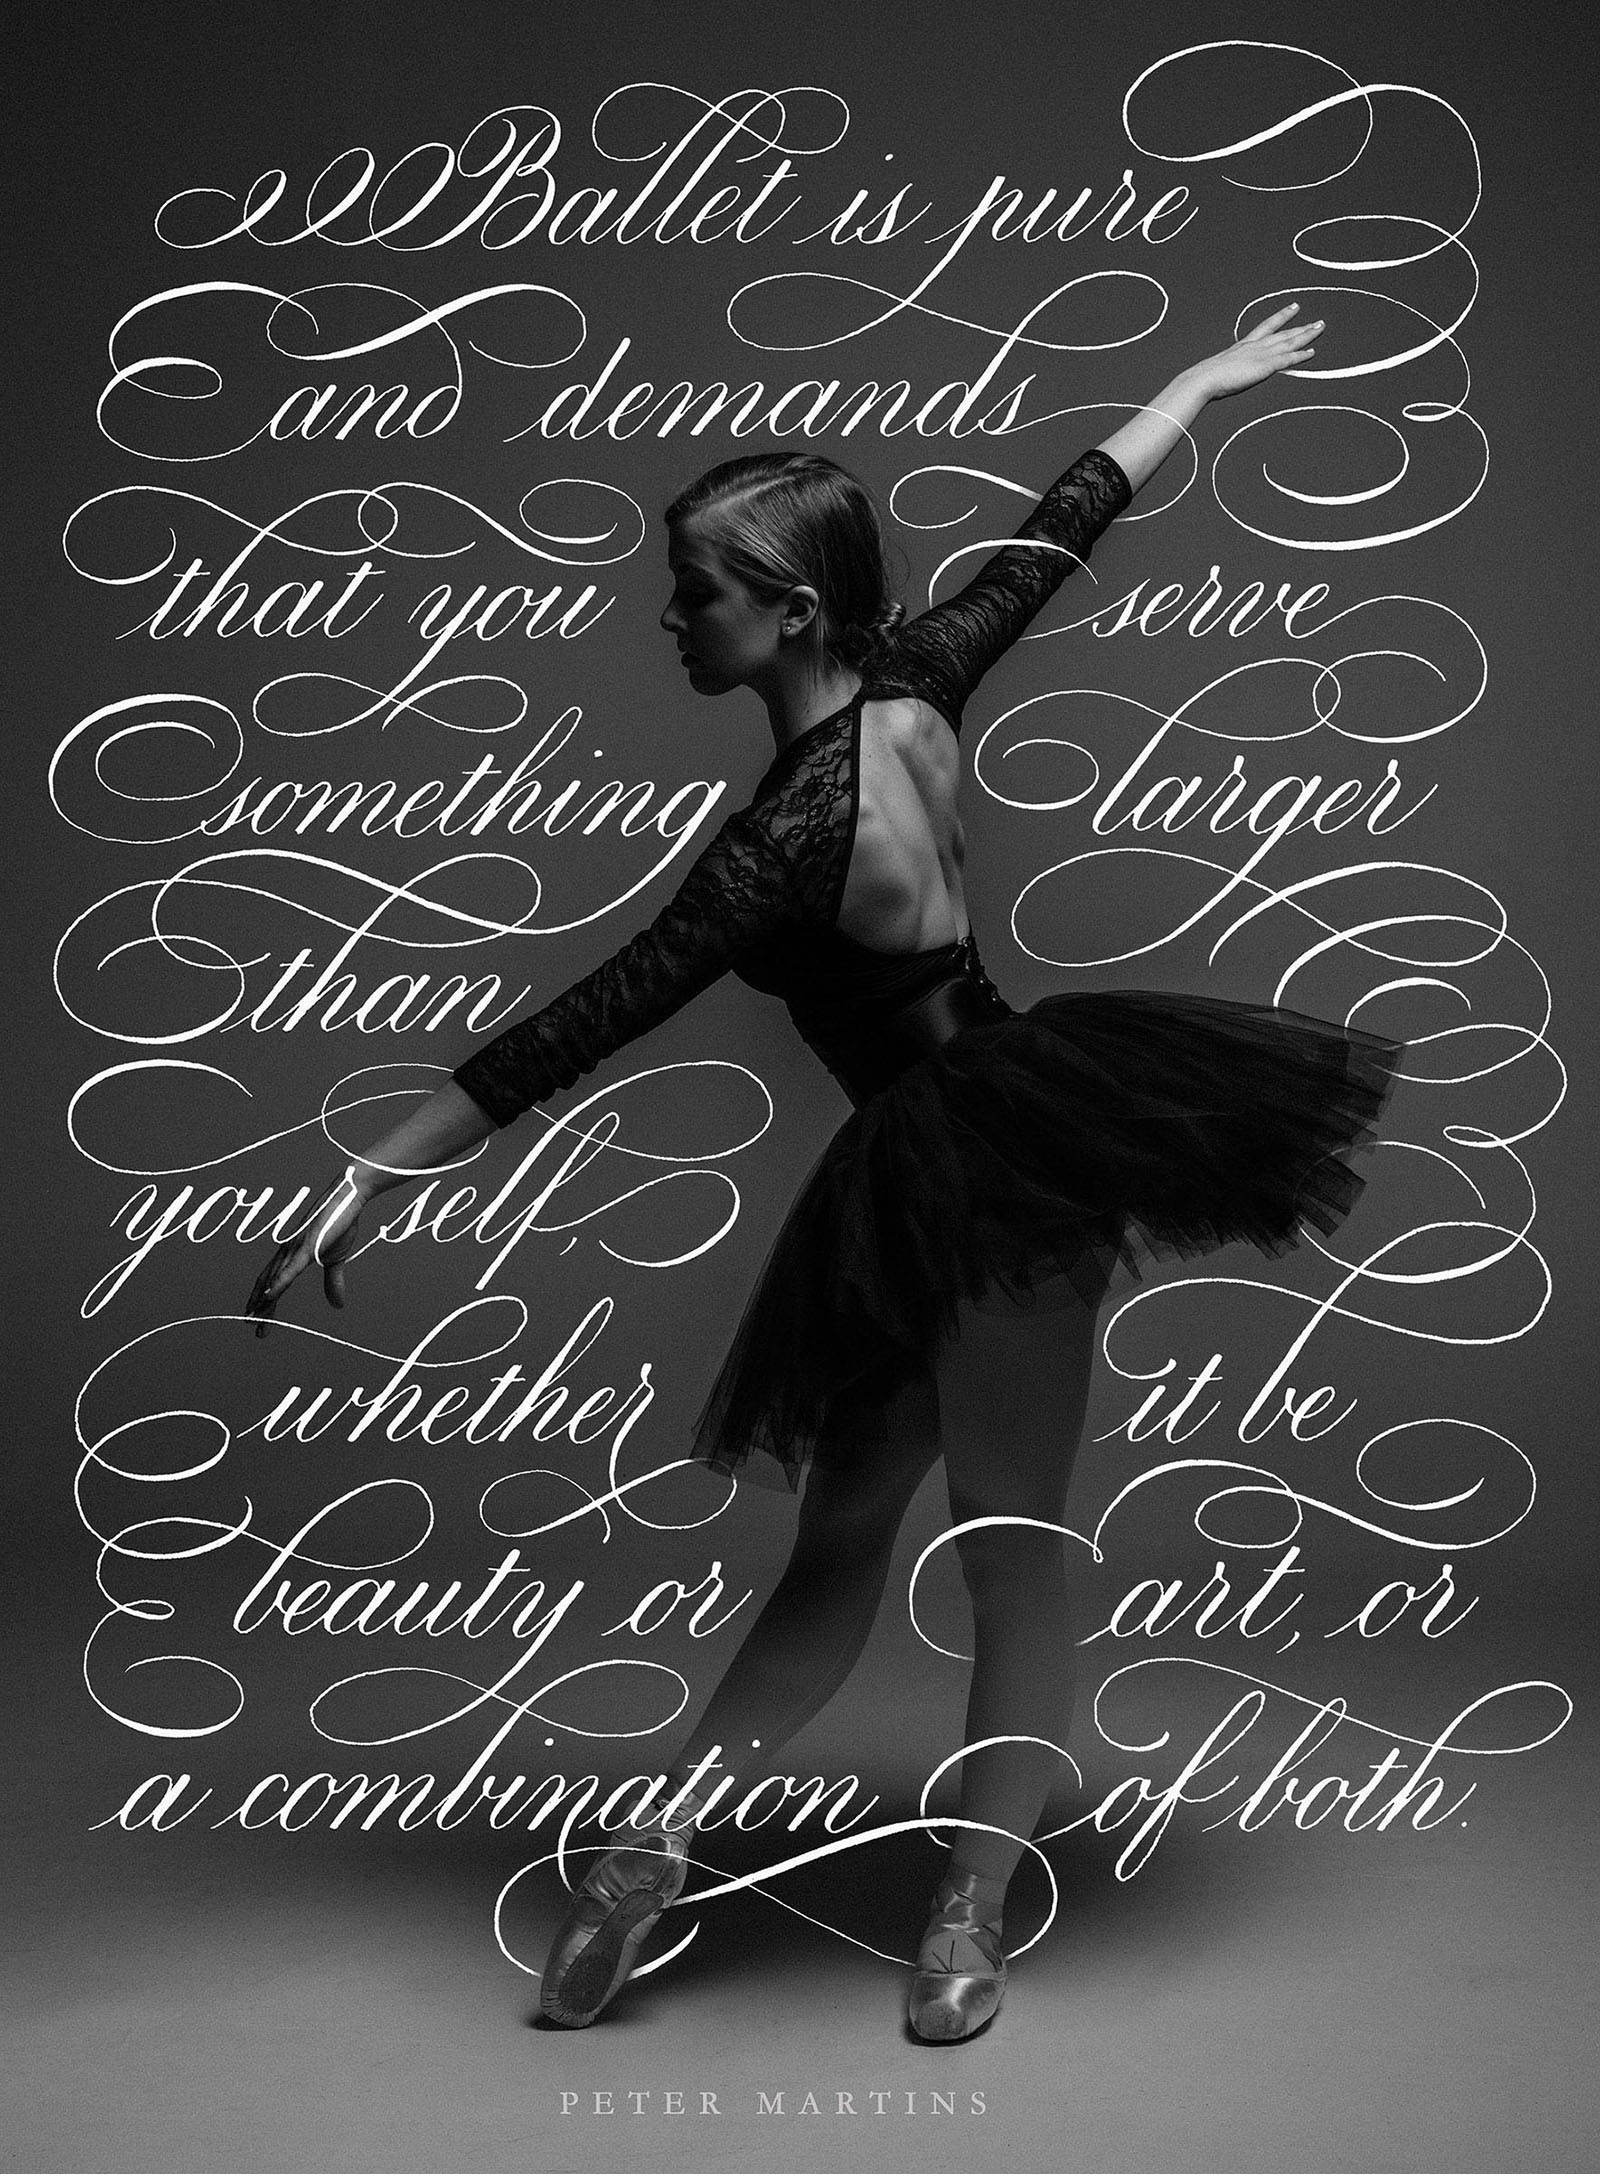 """""""Ballet is pure and demands that you serve something larger than yourself, whether it be beauty or art, or a combination of both. It requires discipline, taking care of yourself, taking care of your own body first. Then it allows you to give of that beauty, the beauty that you acquire by sculpting your own body all your life.""""Peter Martins  Calligraphy by Type and Graphics Lab  typeandgraphicslab.com 